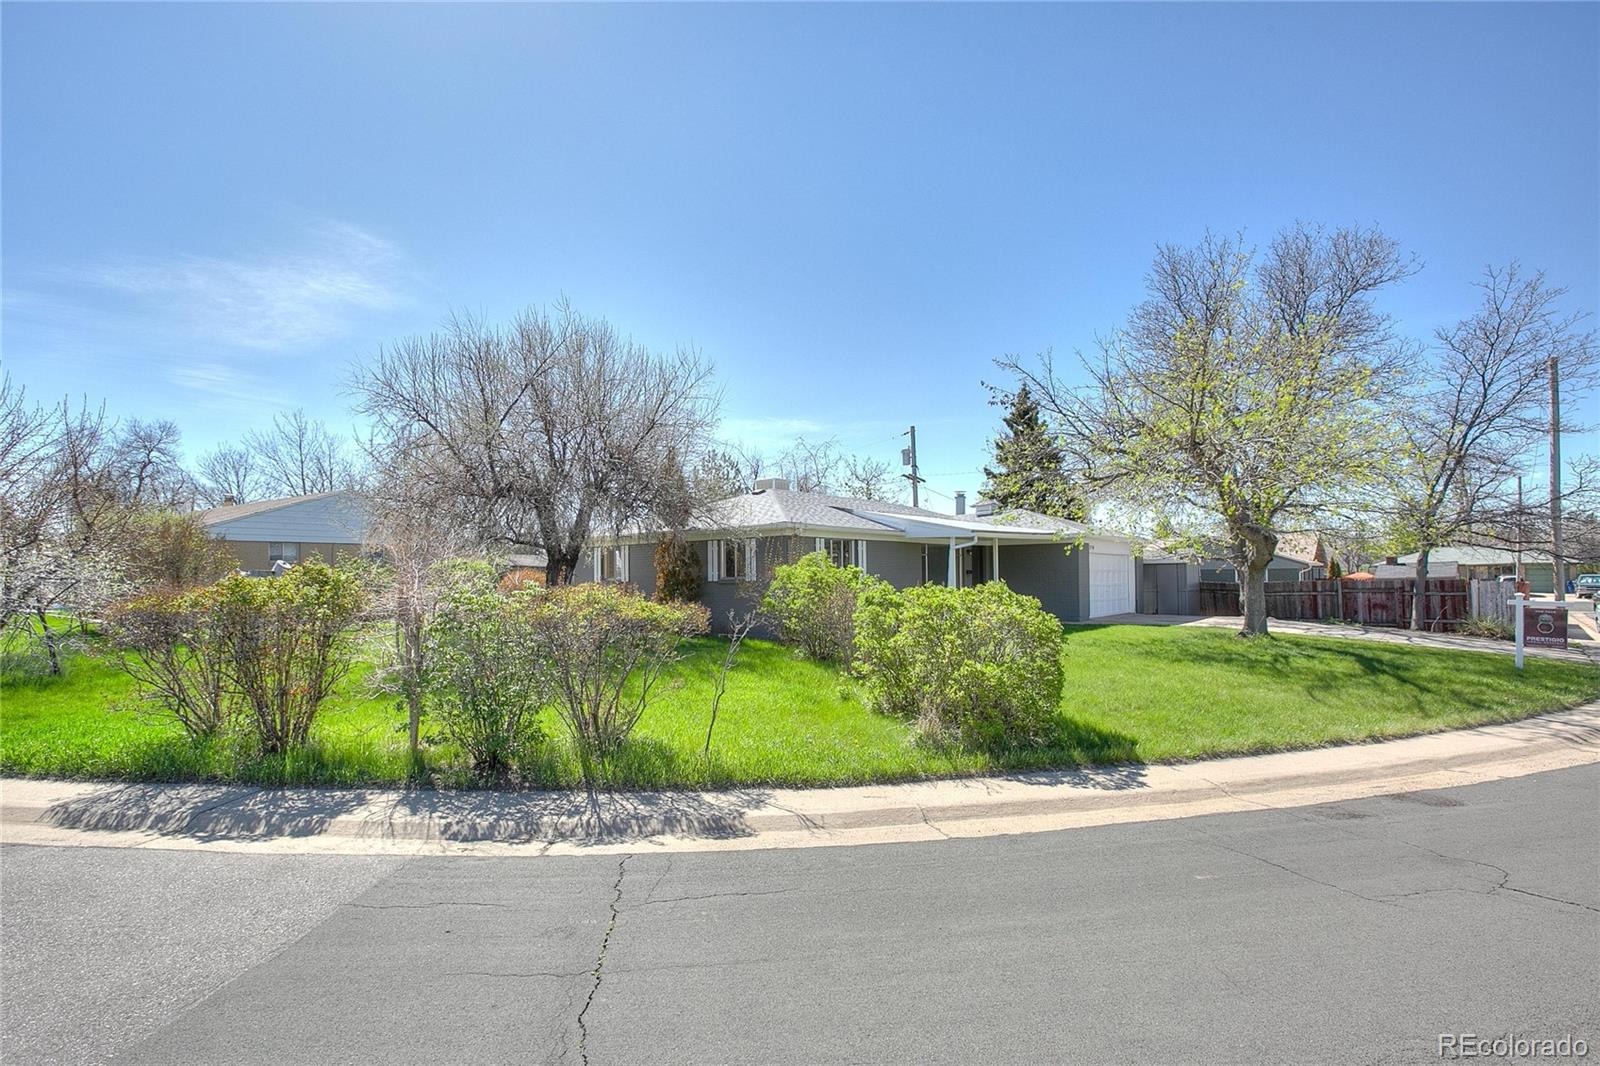 MLS# 9710462 - 34 - 1250 W 7th Ave Dr, Broomfield, CO 80020